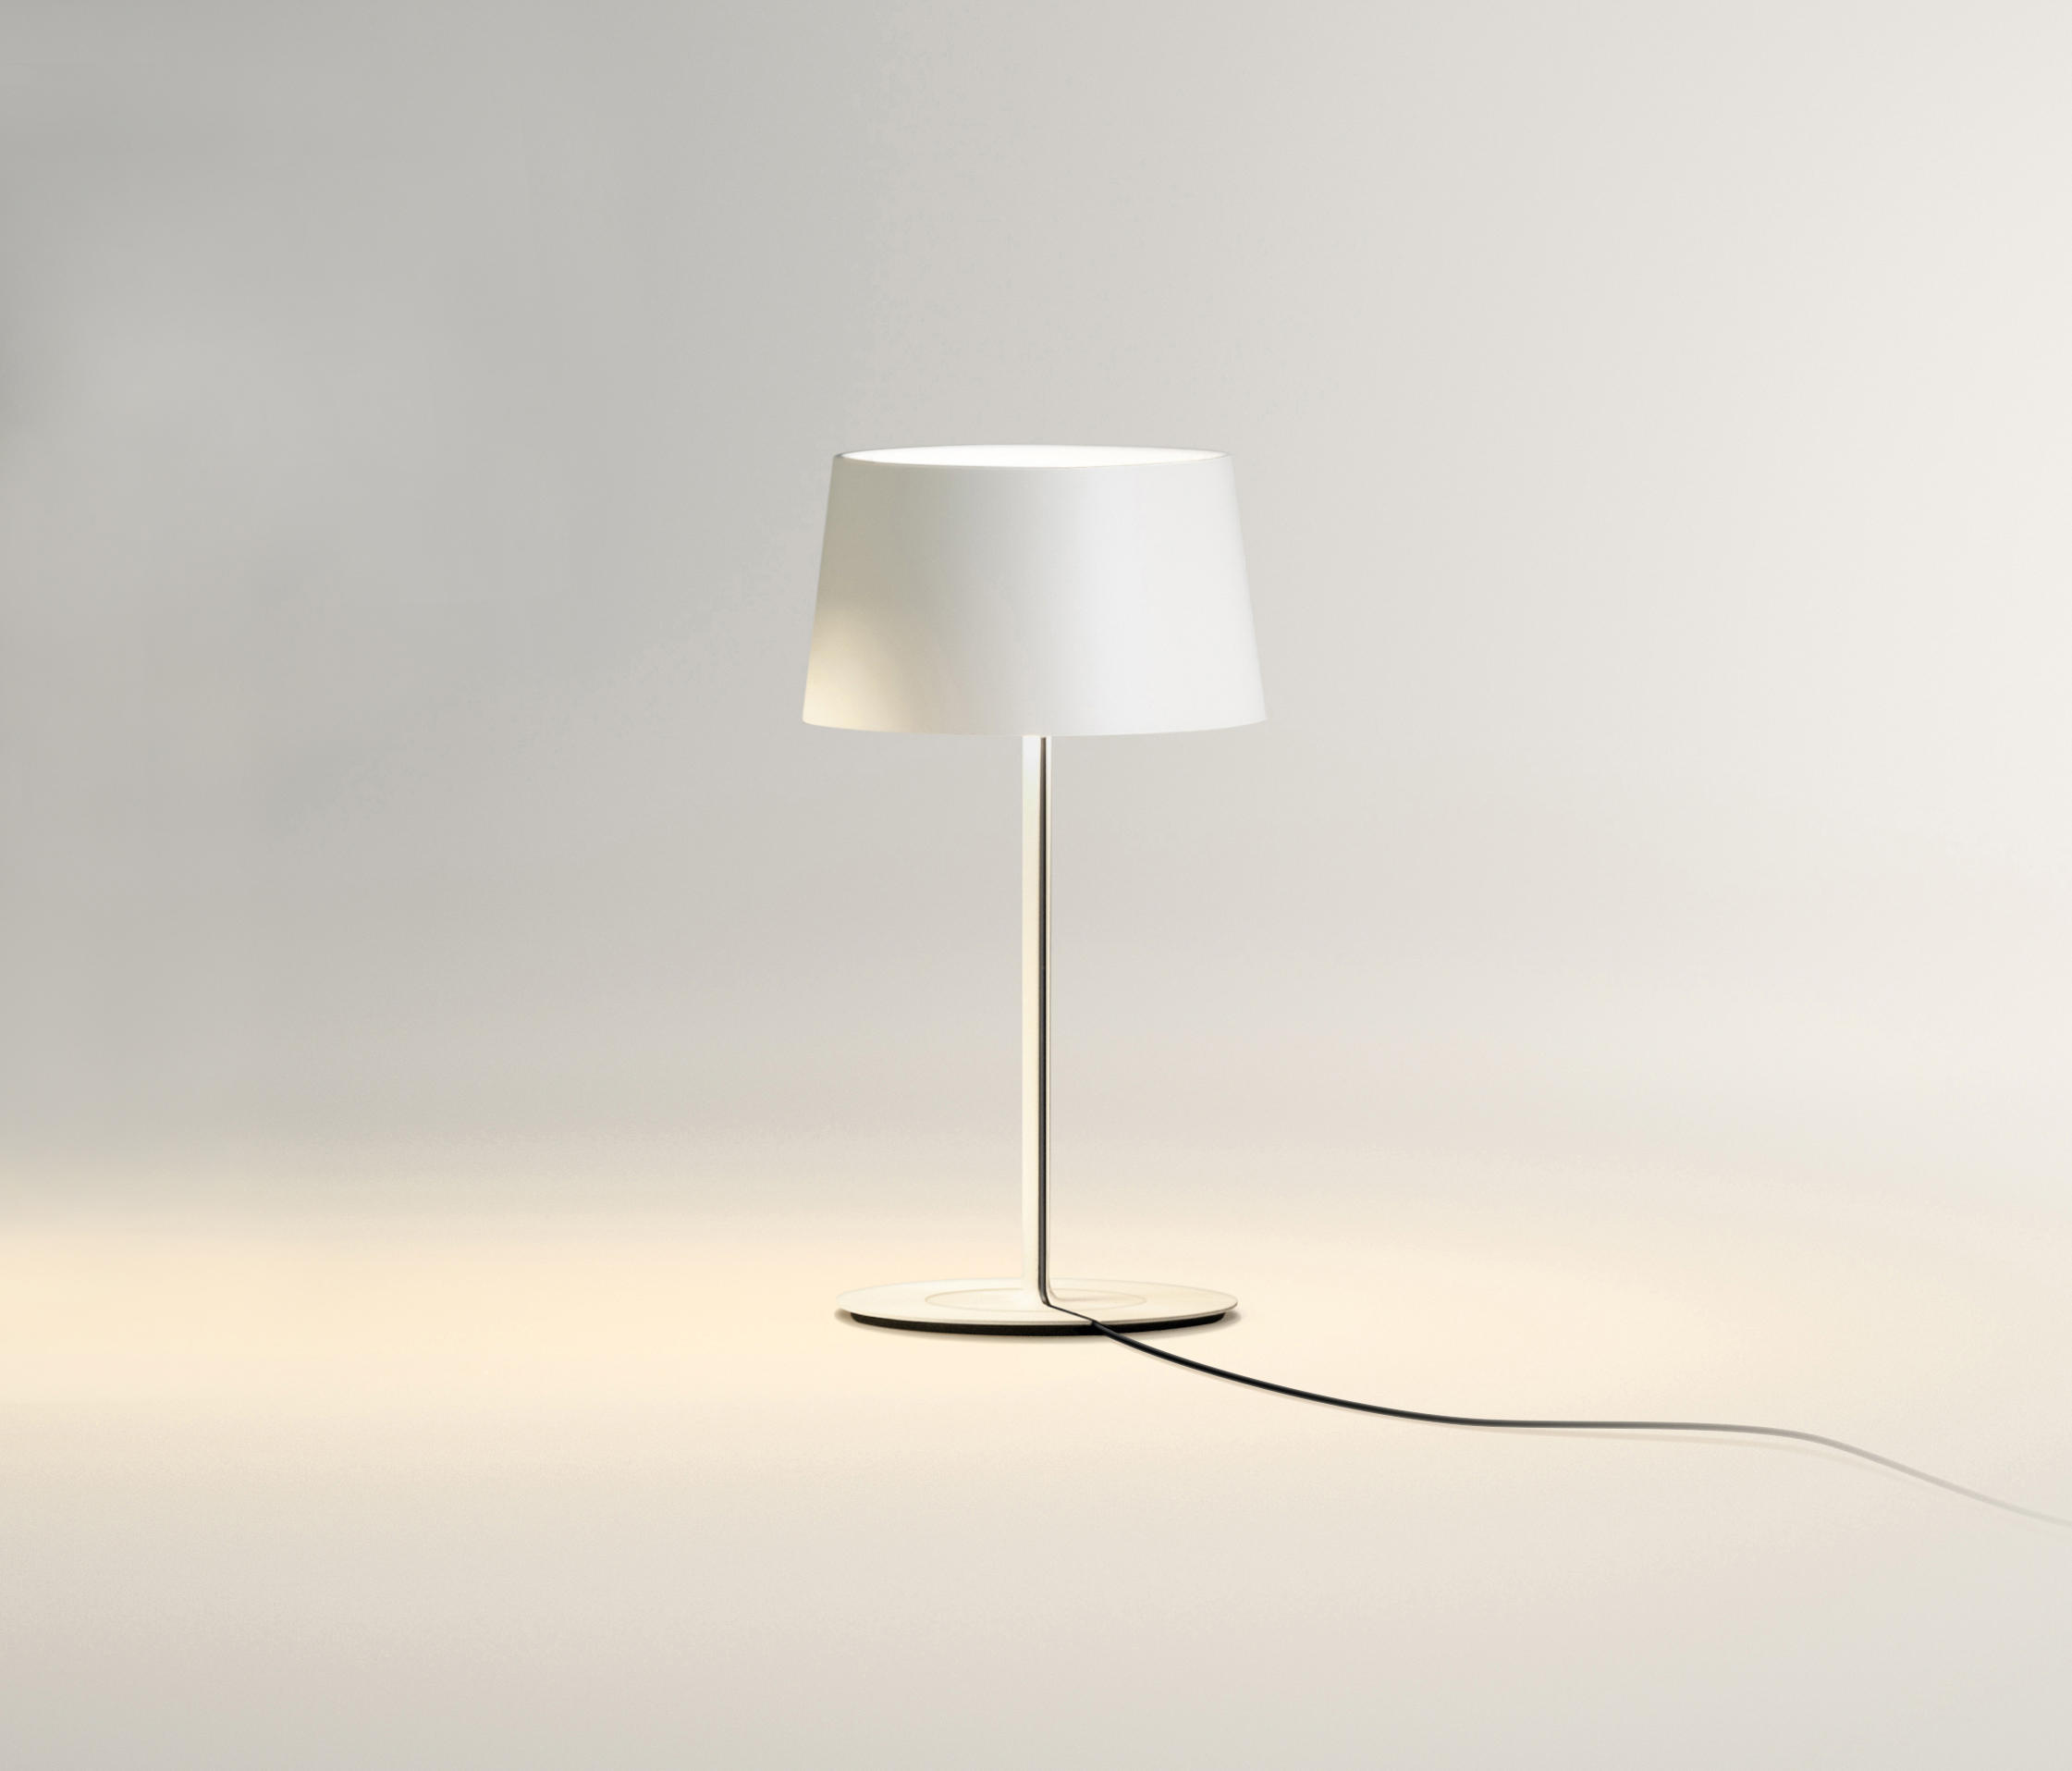 WARM 4896 TABLE LAMP - General lighting from Vibia | Architonic for Vibia Outdoor Floor Lamp  49jwn